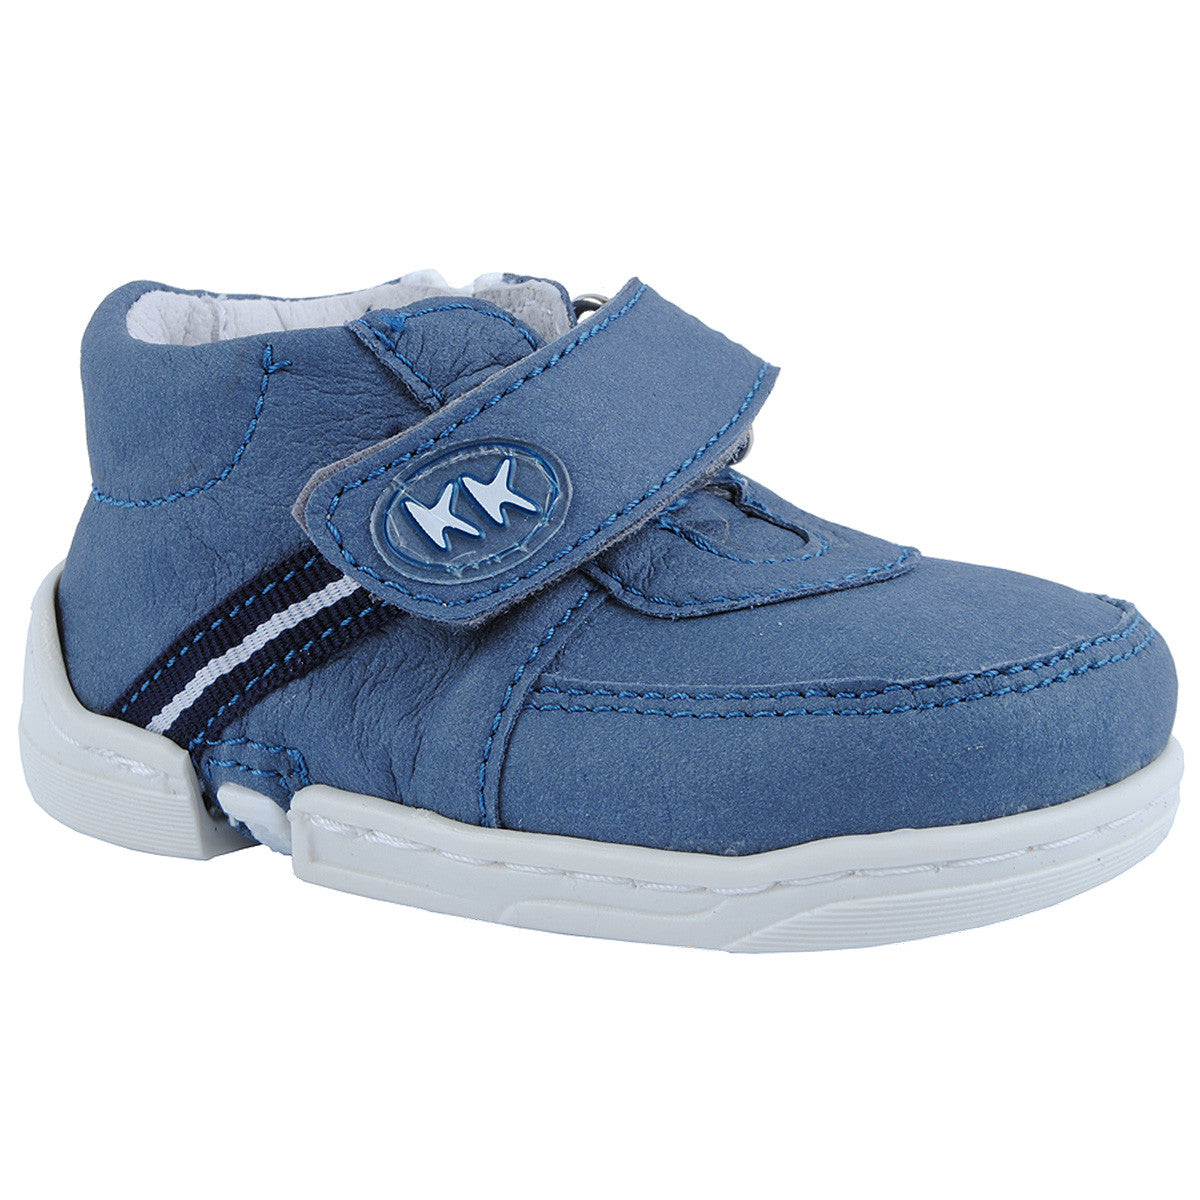 European baby toddler zip around first shoesaustralia online buikki boys shoes girls shoes kids shoes baby shoes infant shoes children izmirmasajfo Images